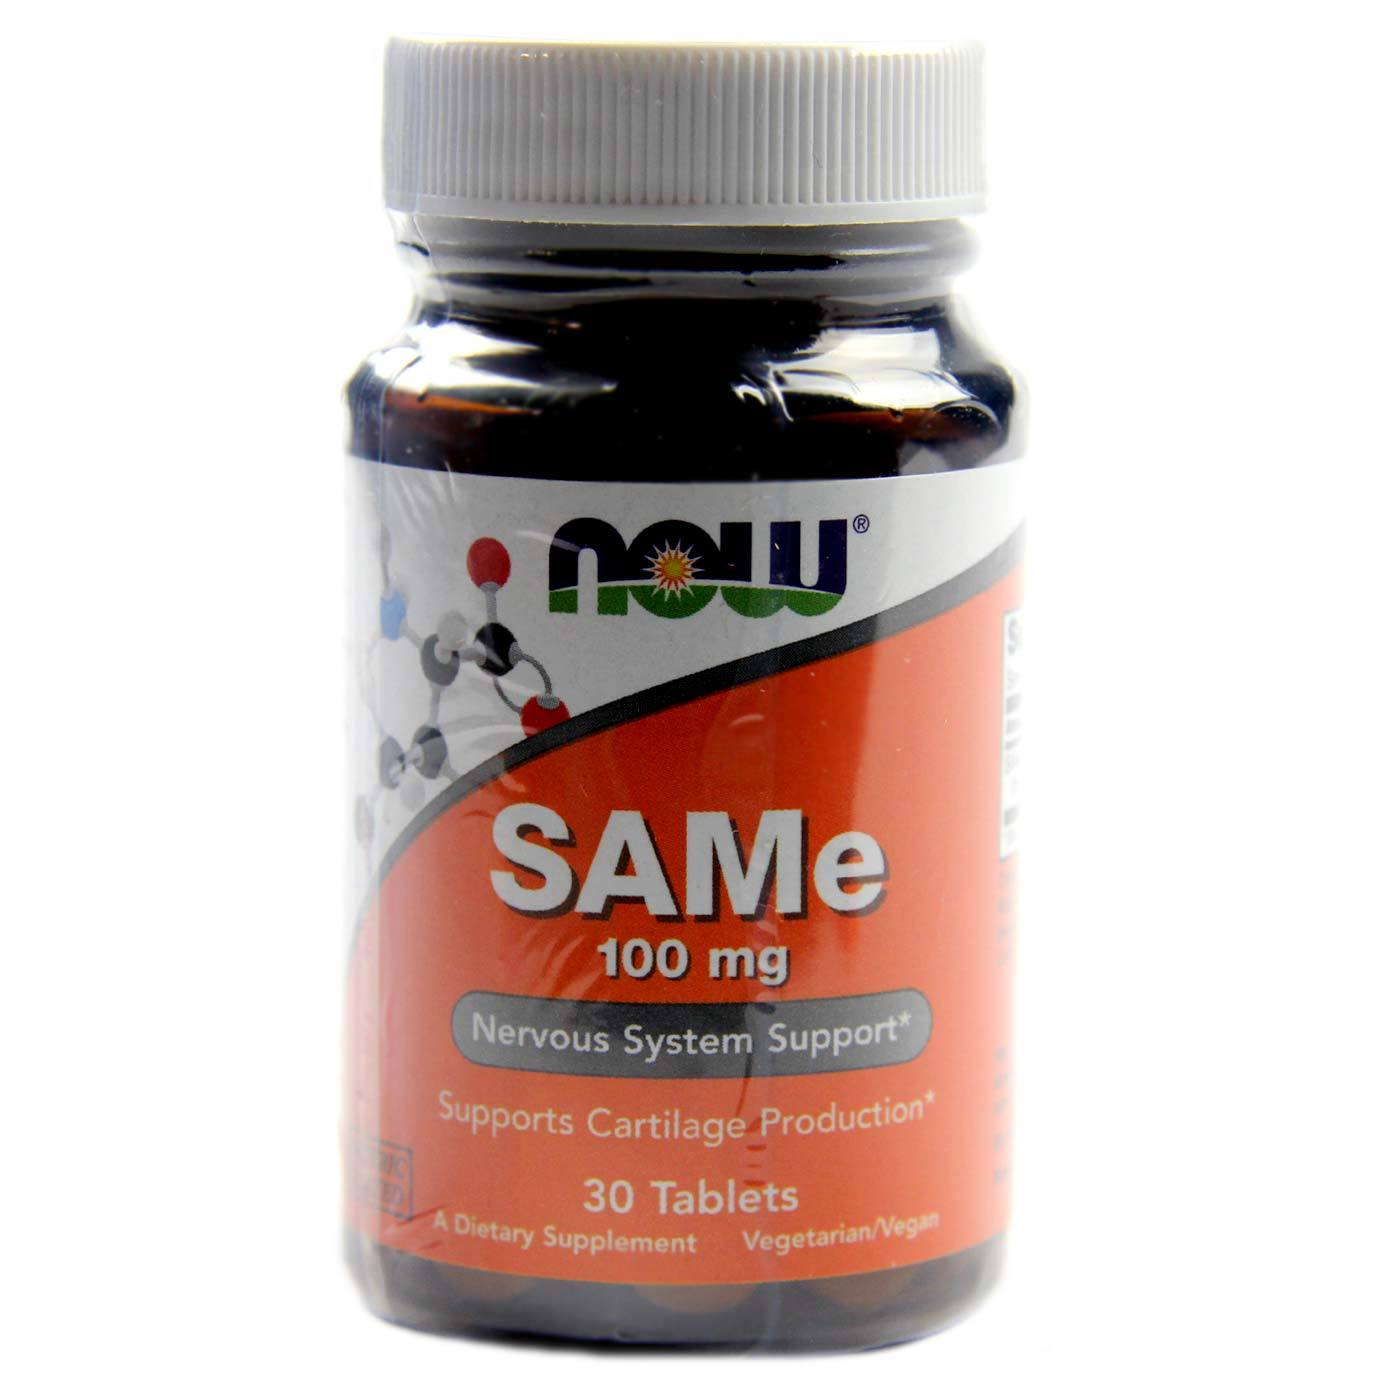 Same supplement